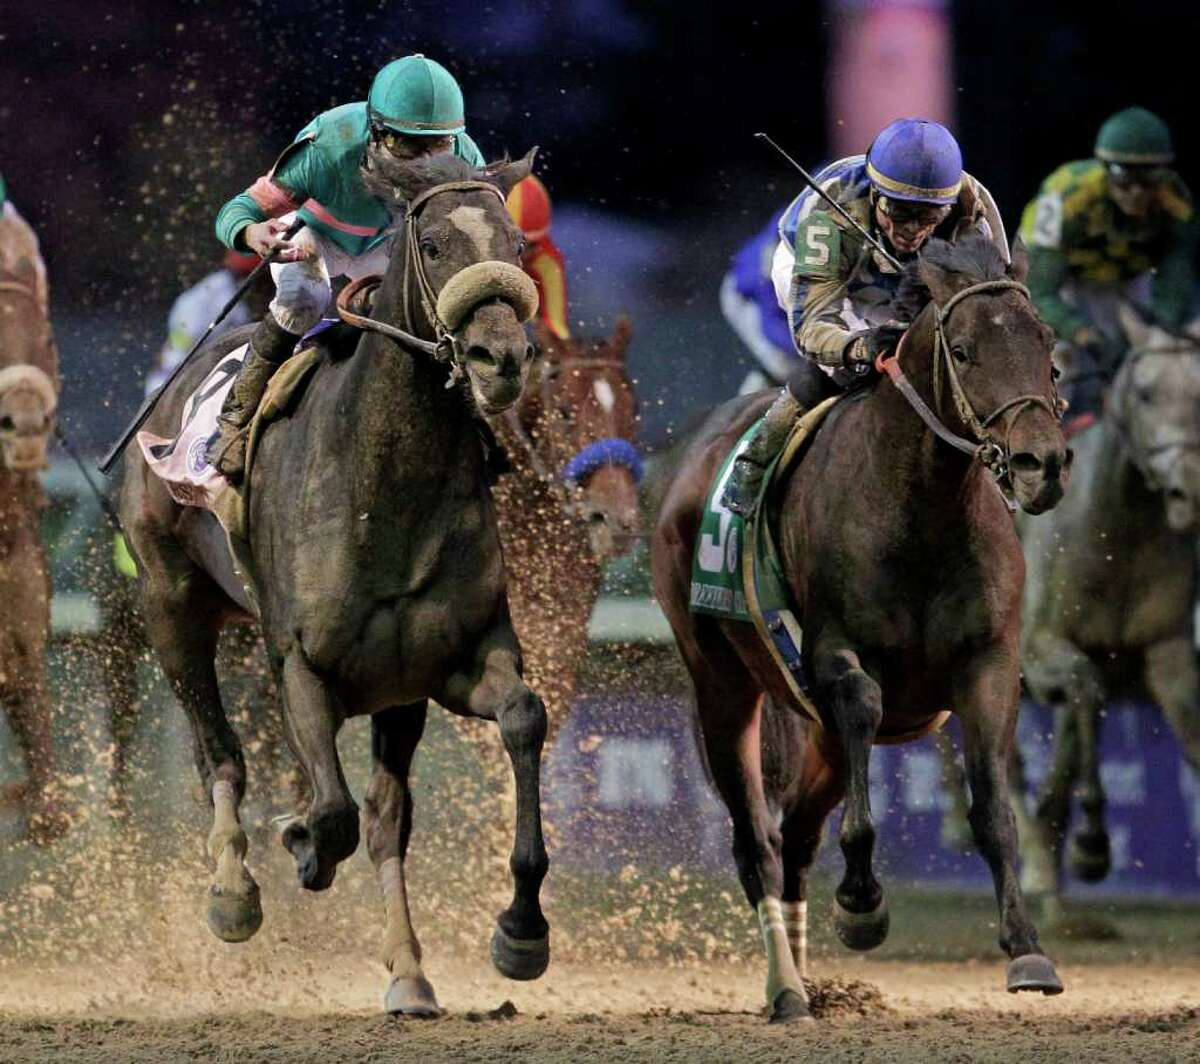 Garrett Gomez, right, rides Blame to victory during the Classic race at the Breeder's Cup horse races at Churchill Downs Saturday, Nov. 6, 2010, in Louisville, Ky. Mike Smith riding Zenyatta finished second. (AP Photo/Darron Cummings)